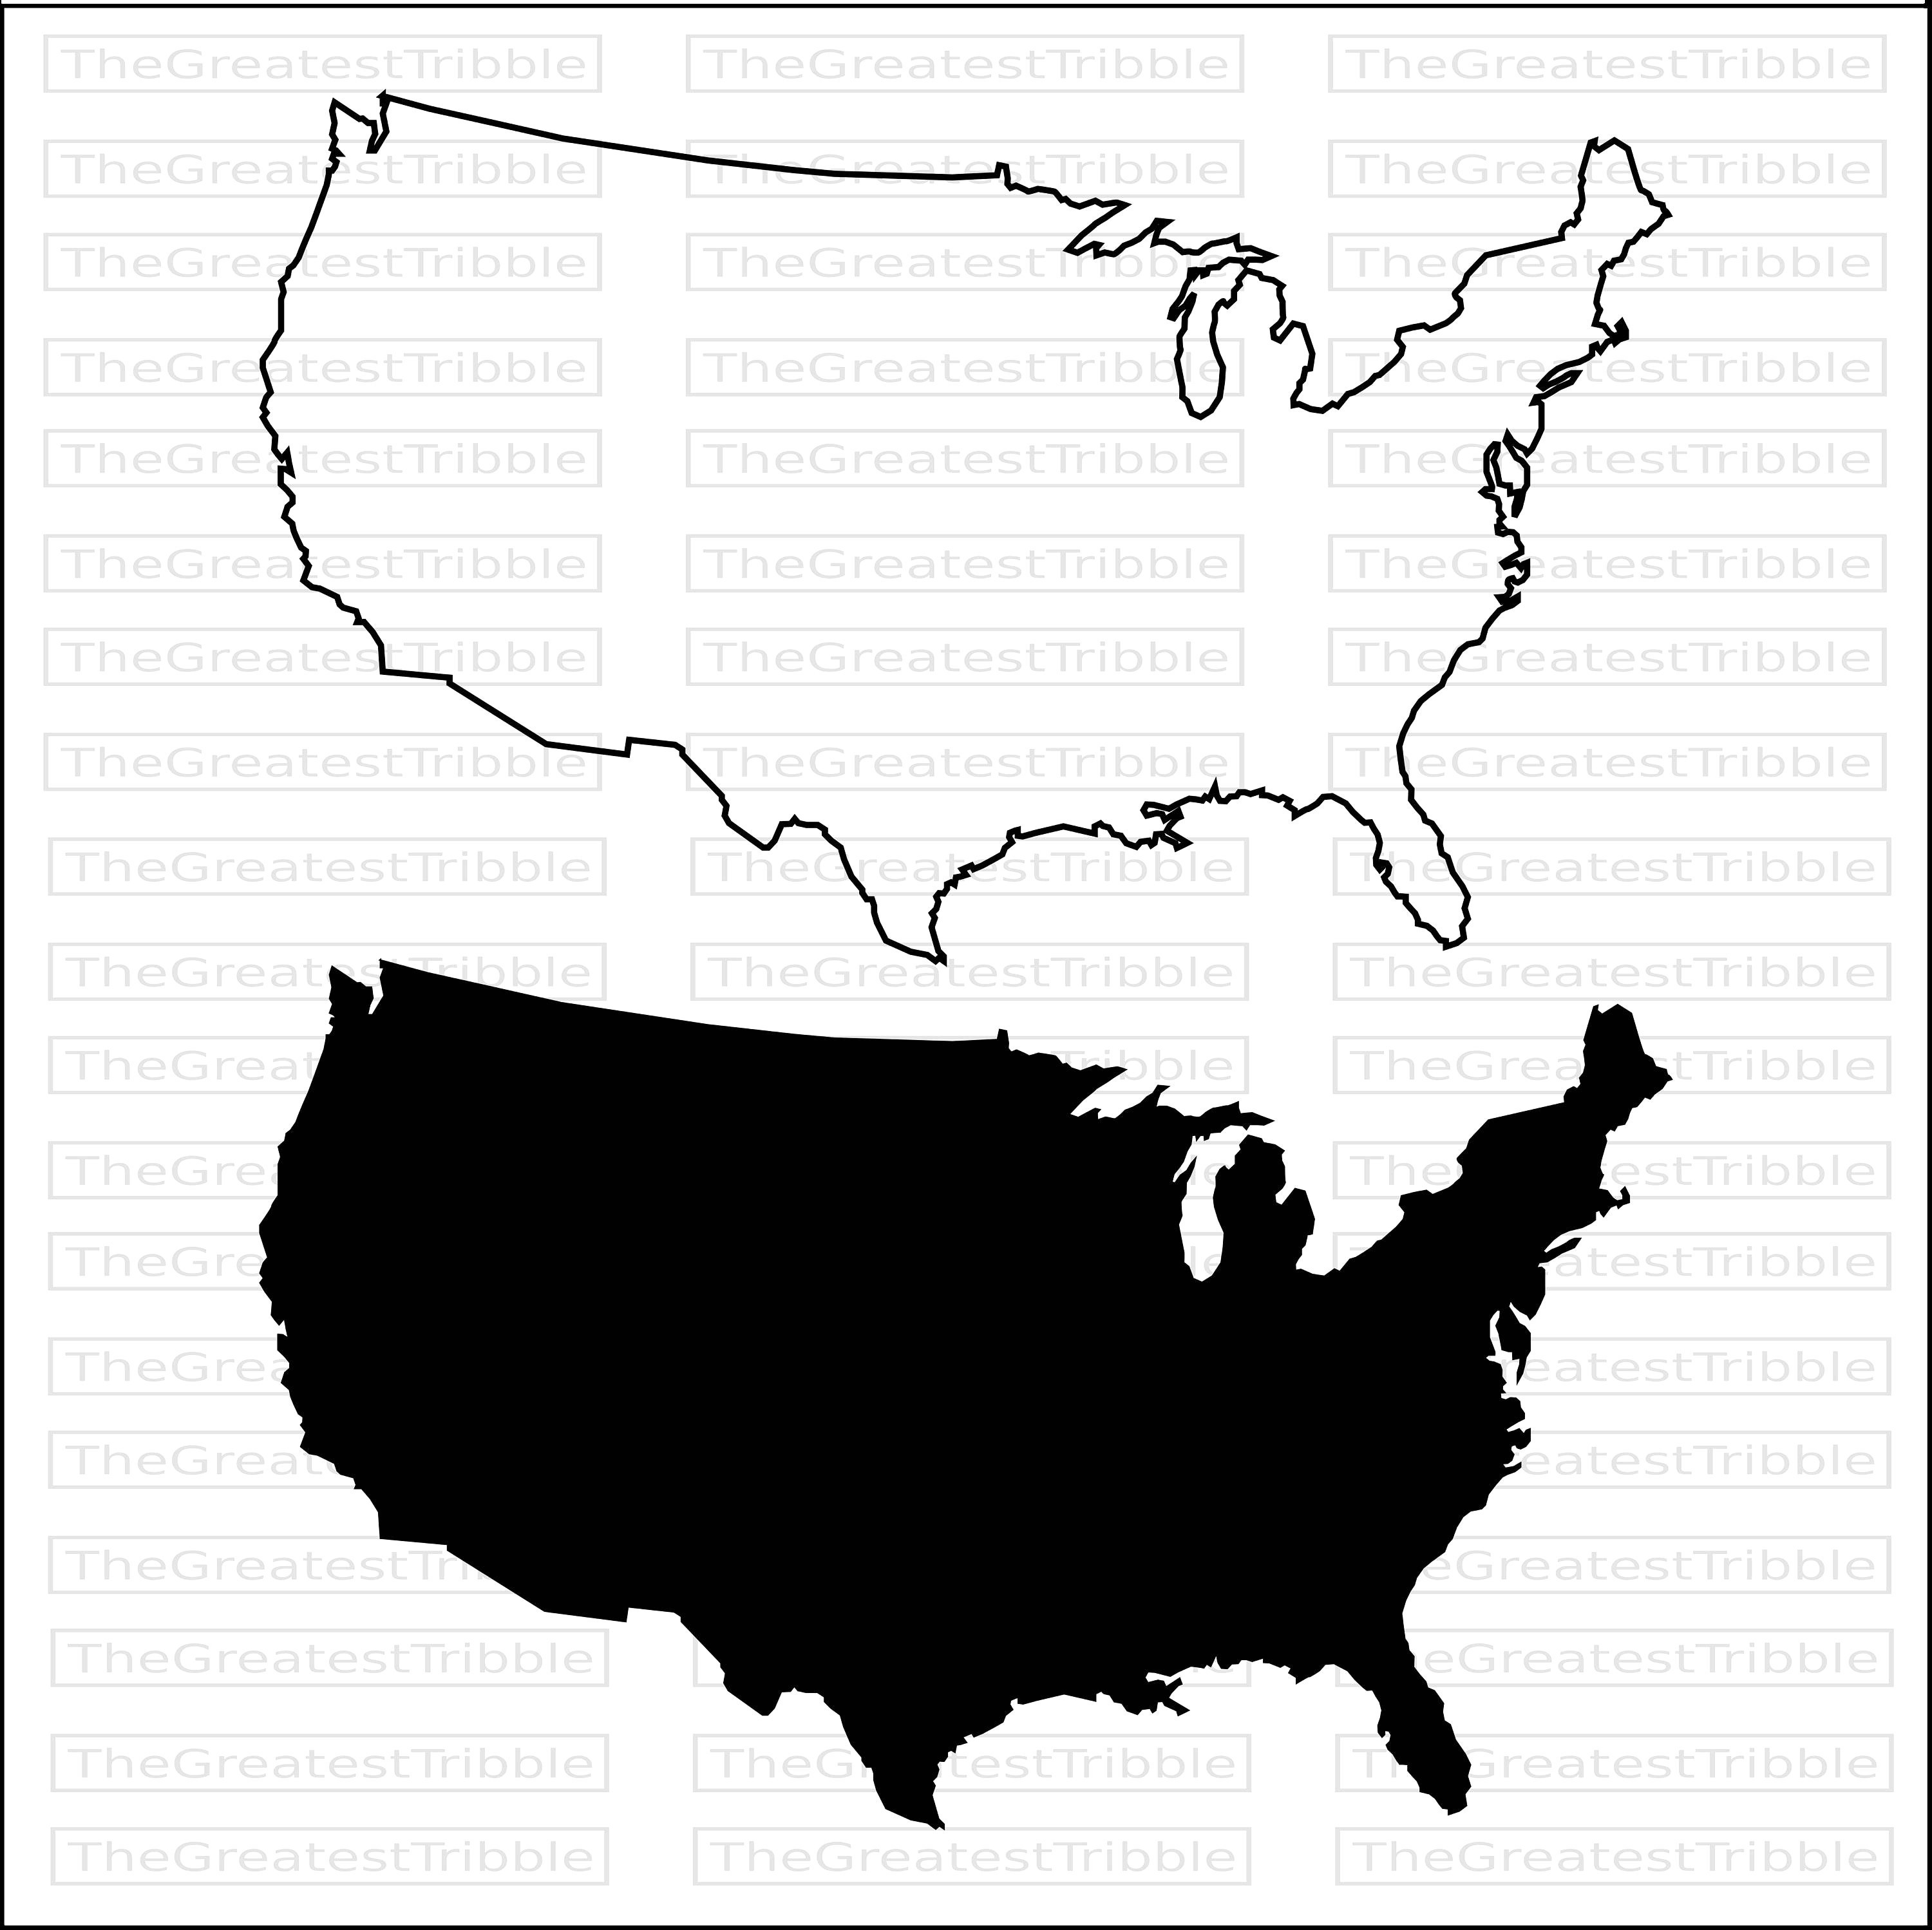 3000x2997 united states map cad drawing save united states map cad drawing